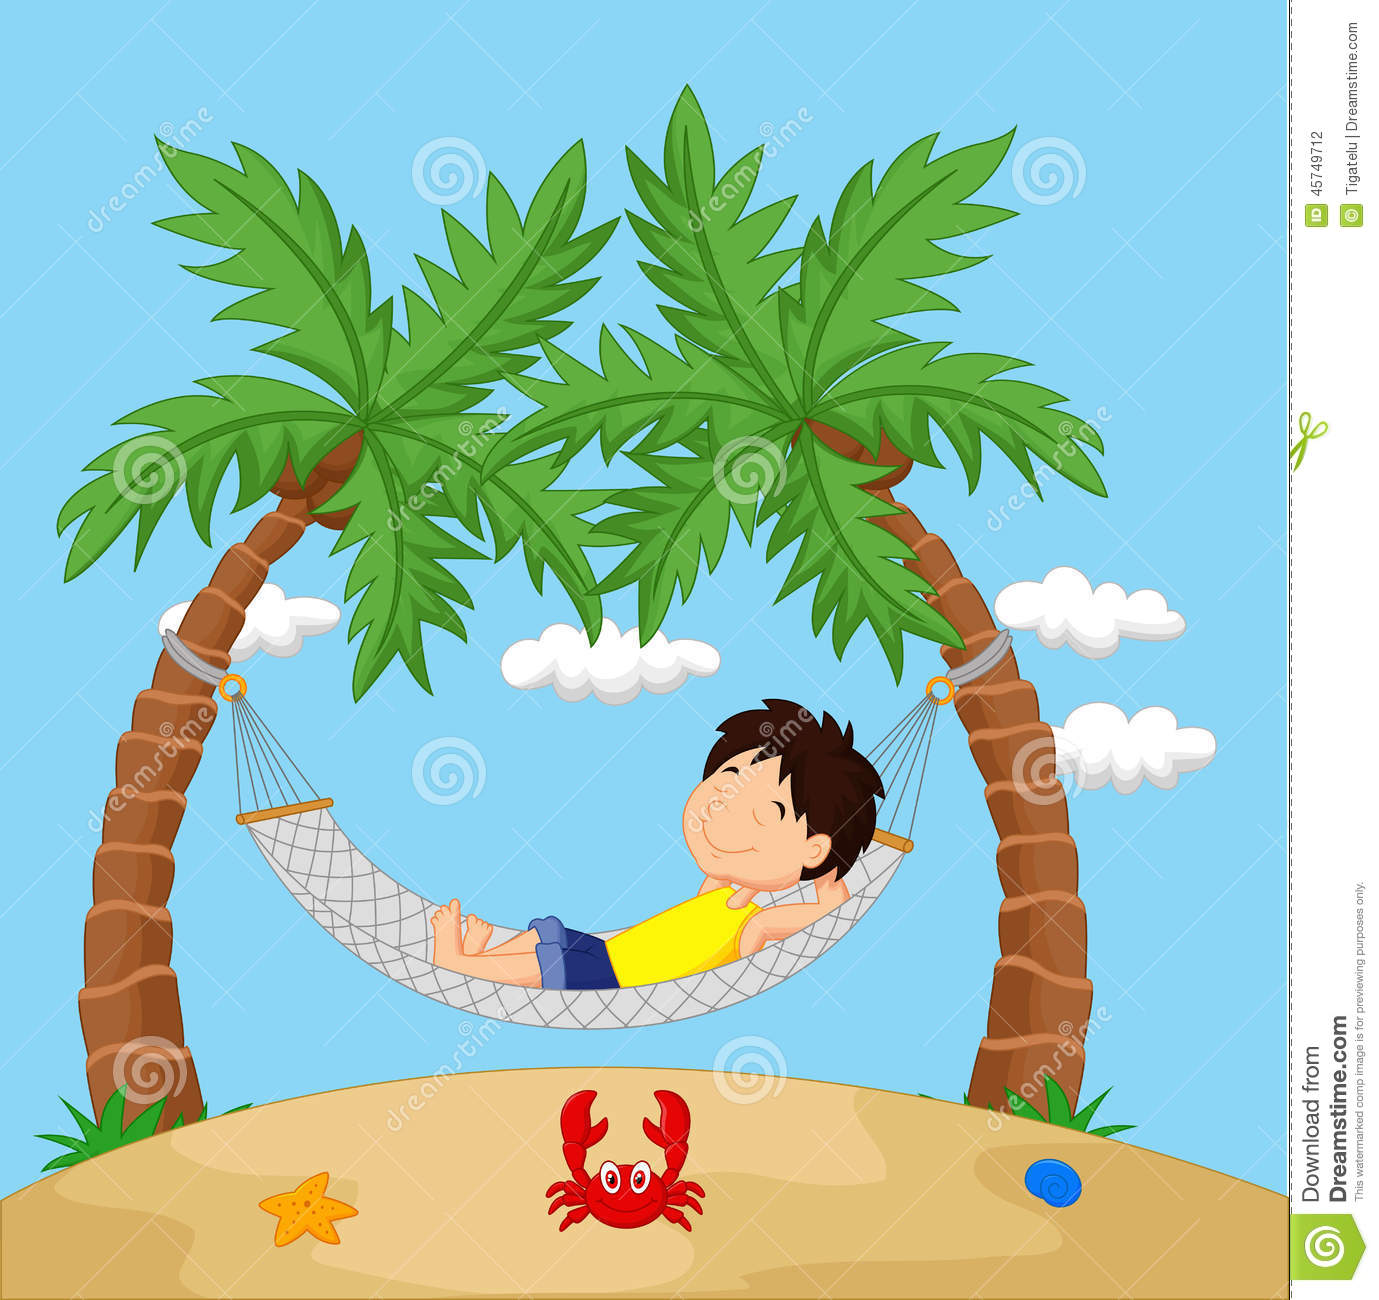 pirate-kid-clipart